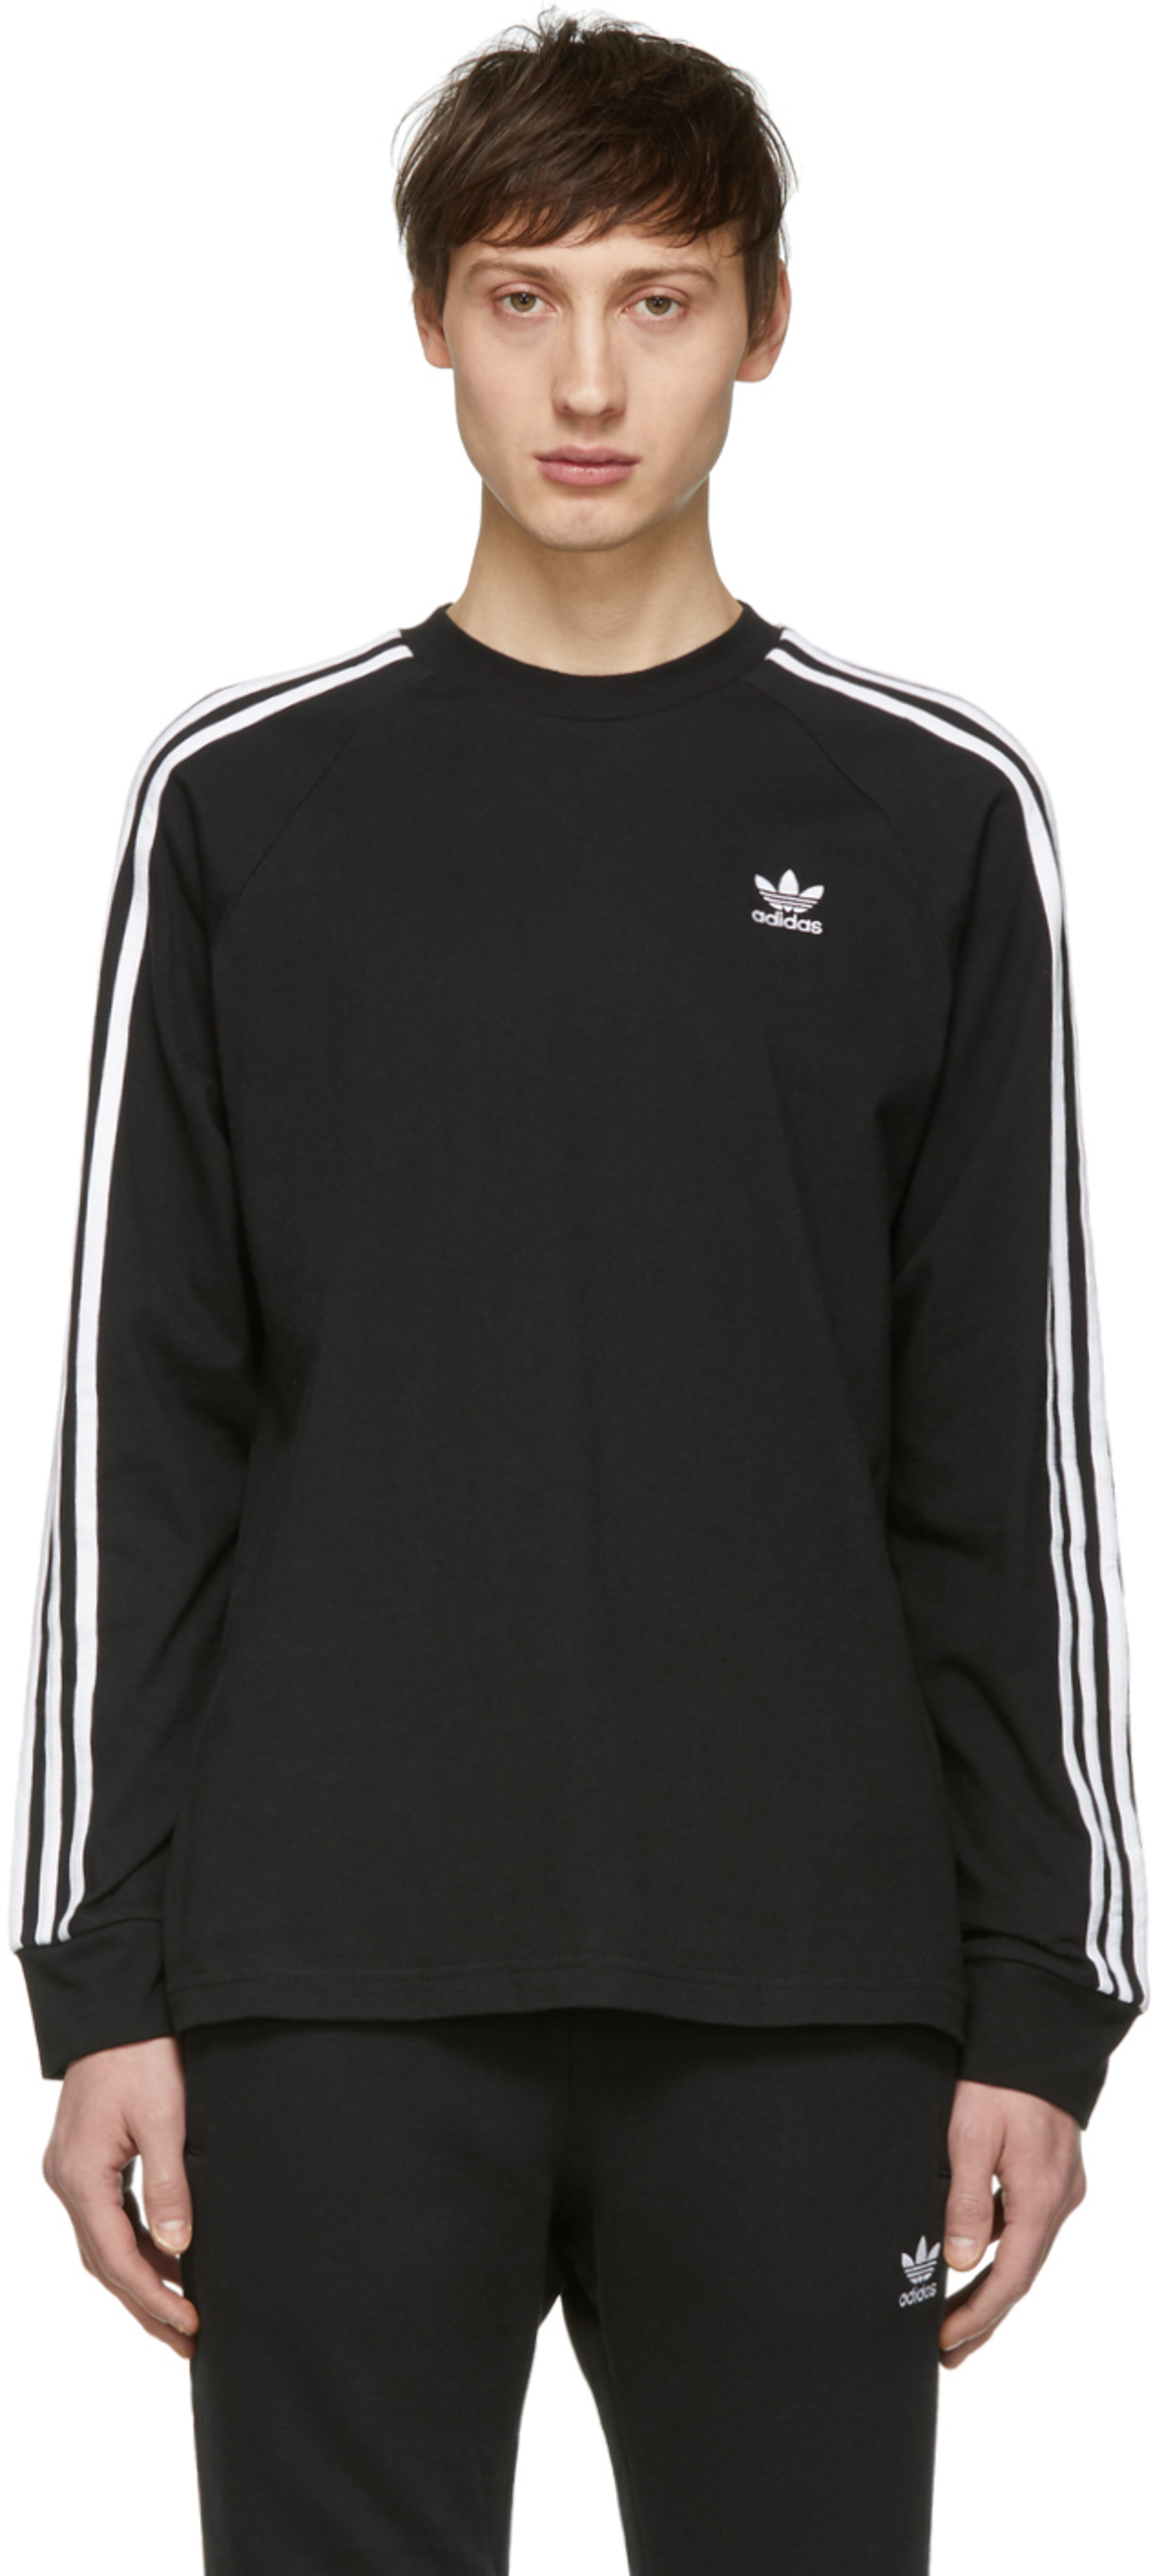 649b3d06874f Adidas Originals for Men SS19 Collection